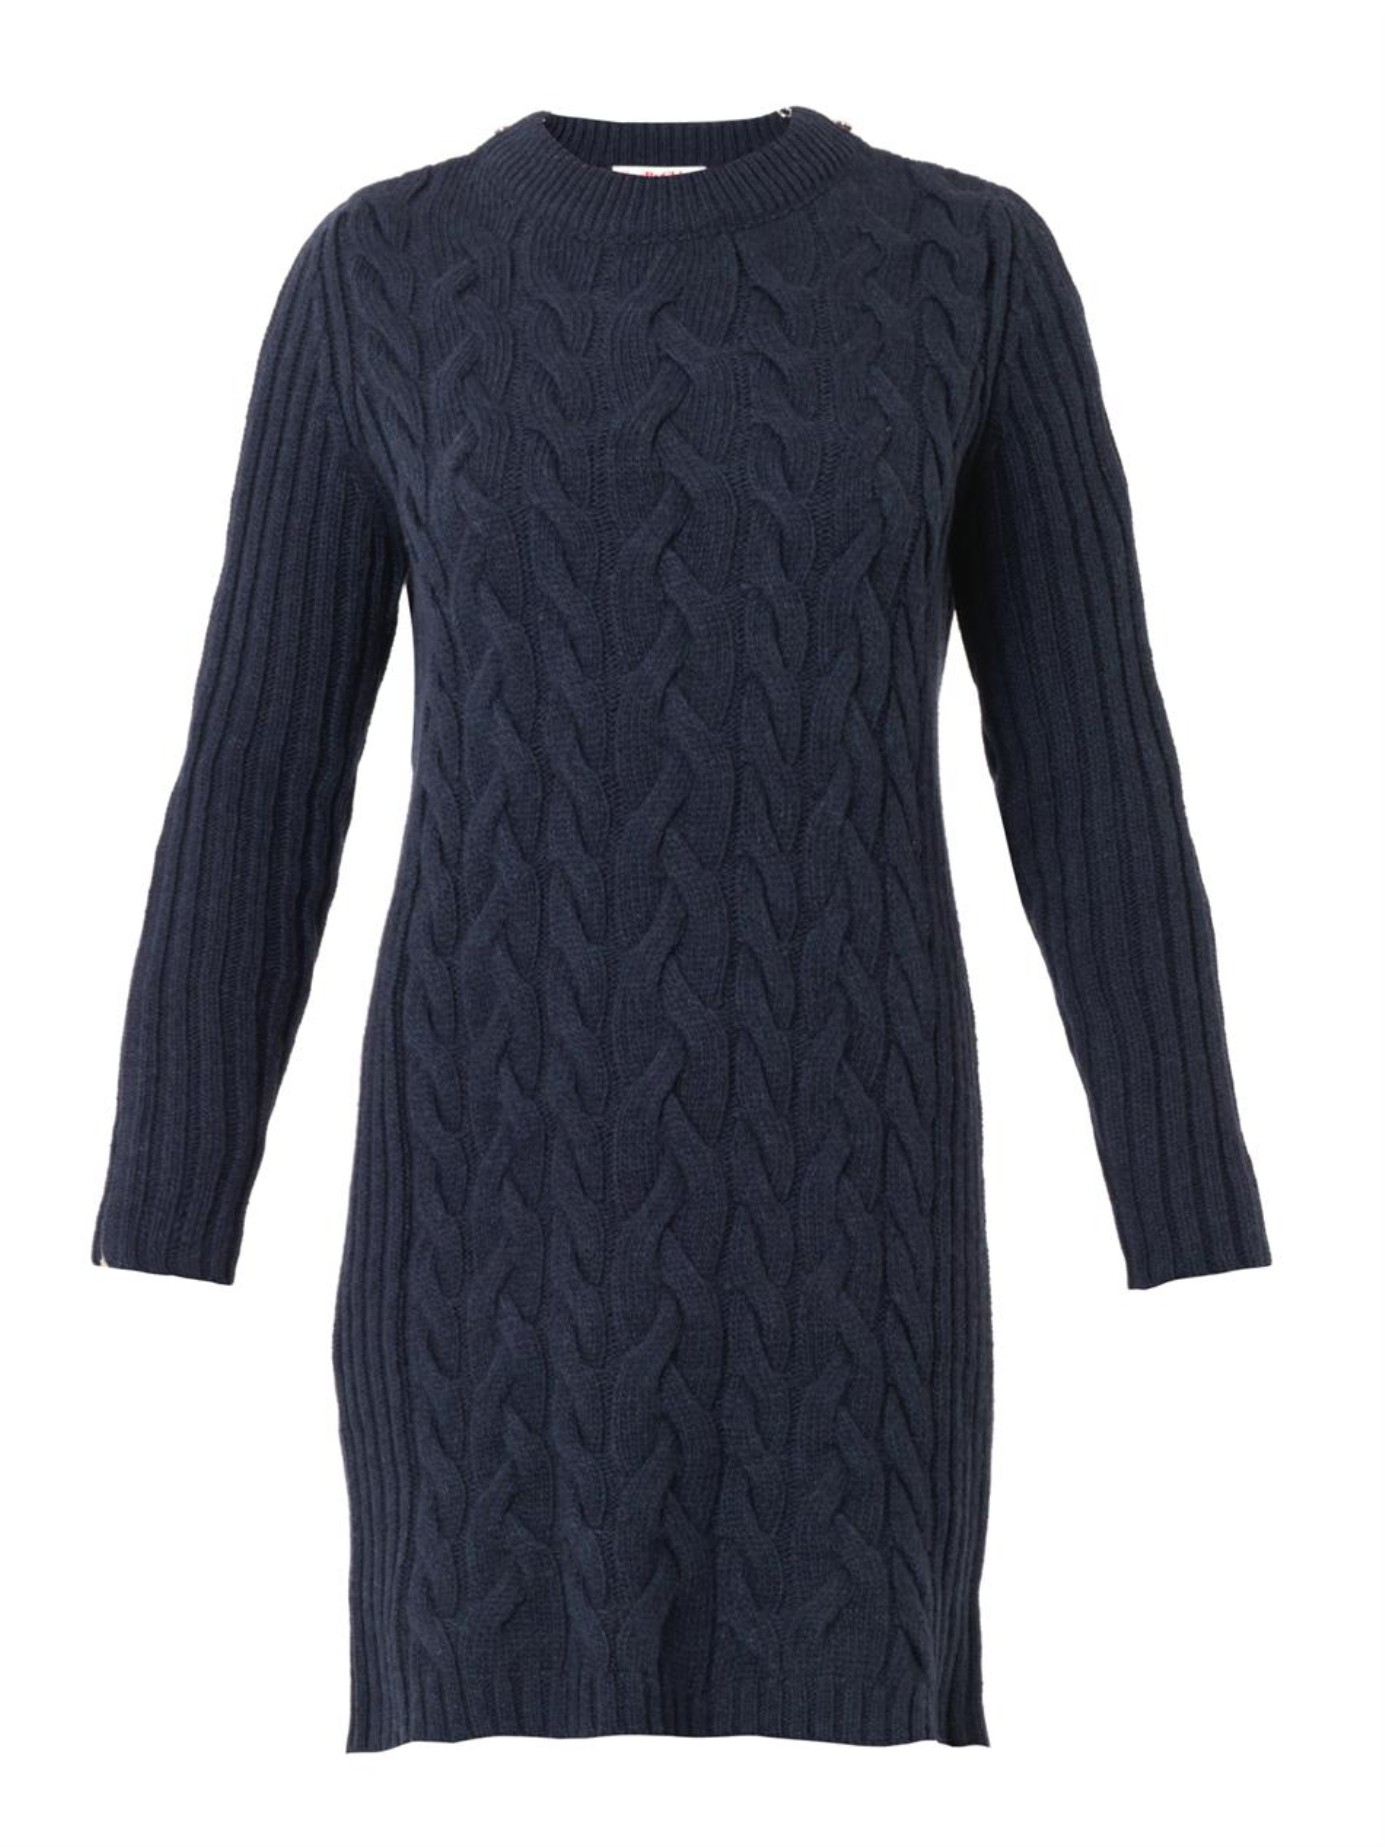 See by chloé Cable-Knit Sweater Dress in Blue | Lyst